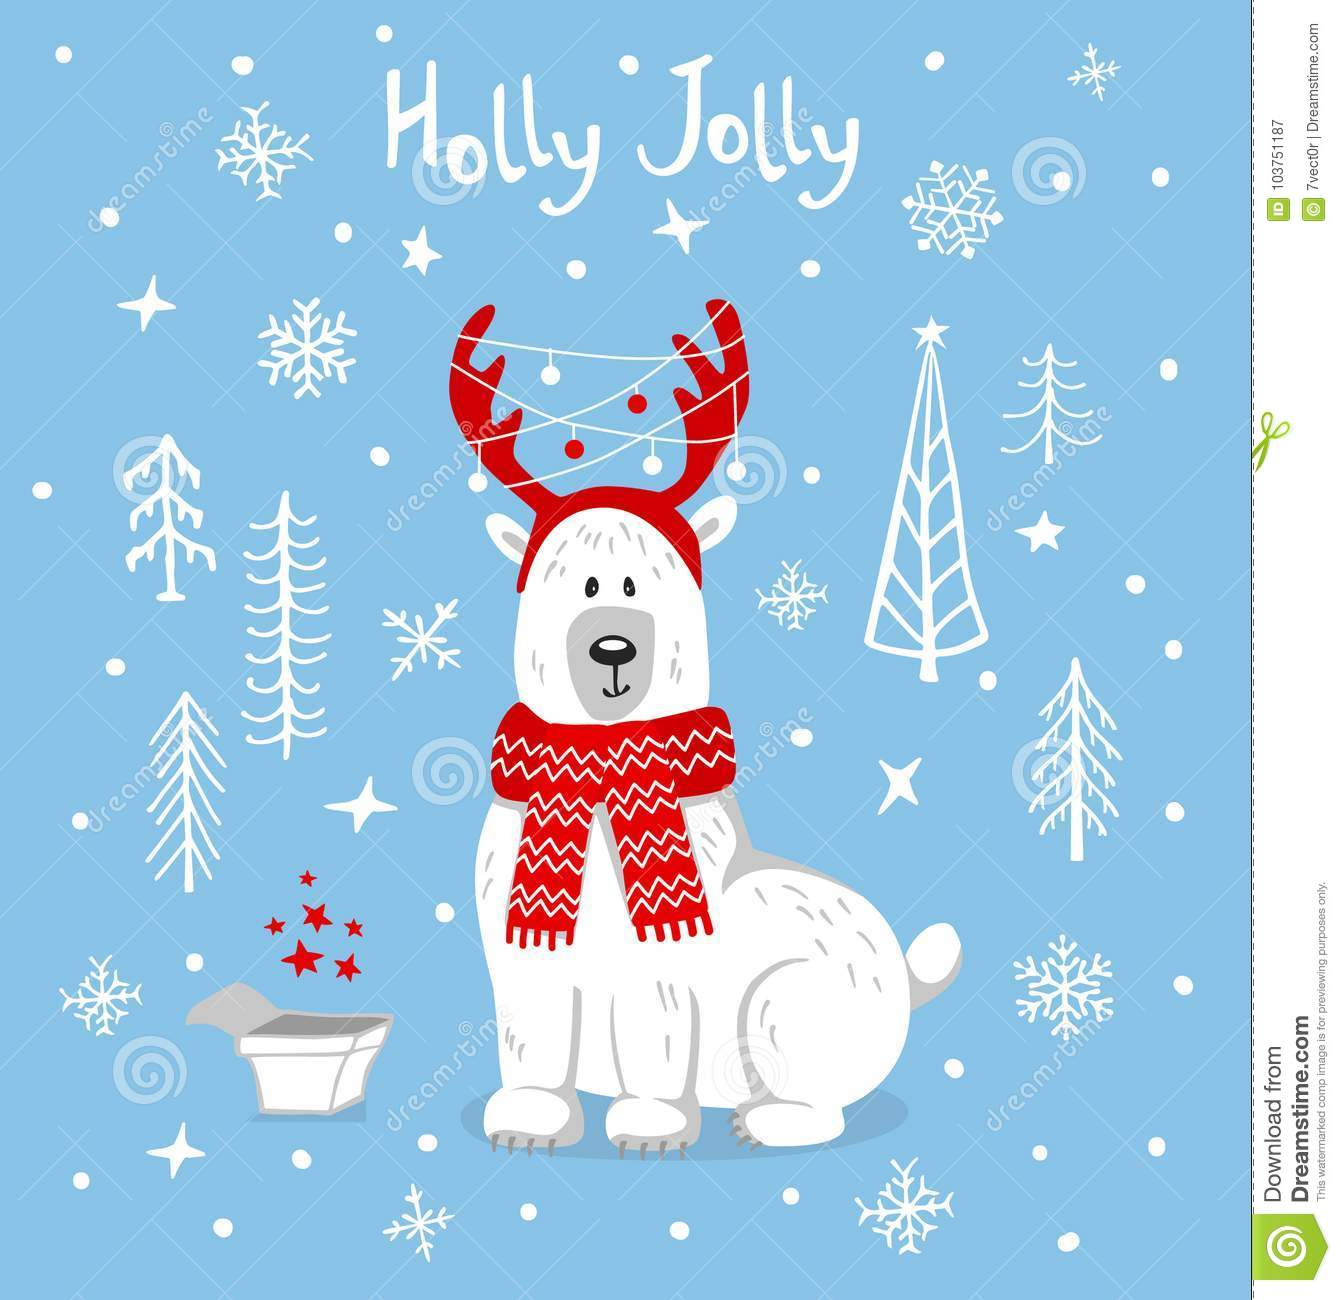 Merry Christmas Happy New Year Xmas Greeting Card With Cute Polar ...